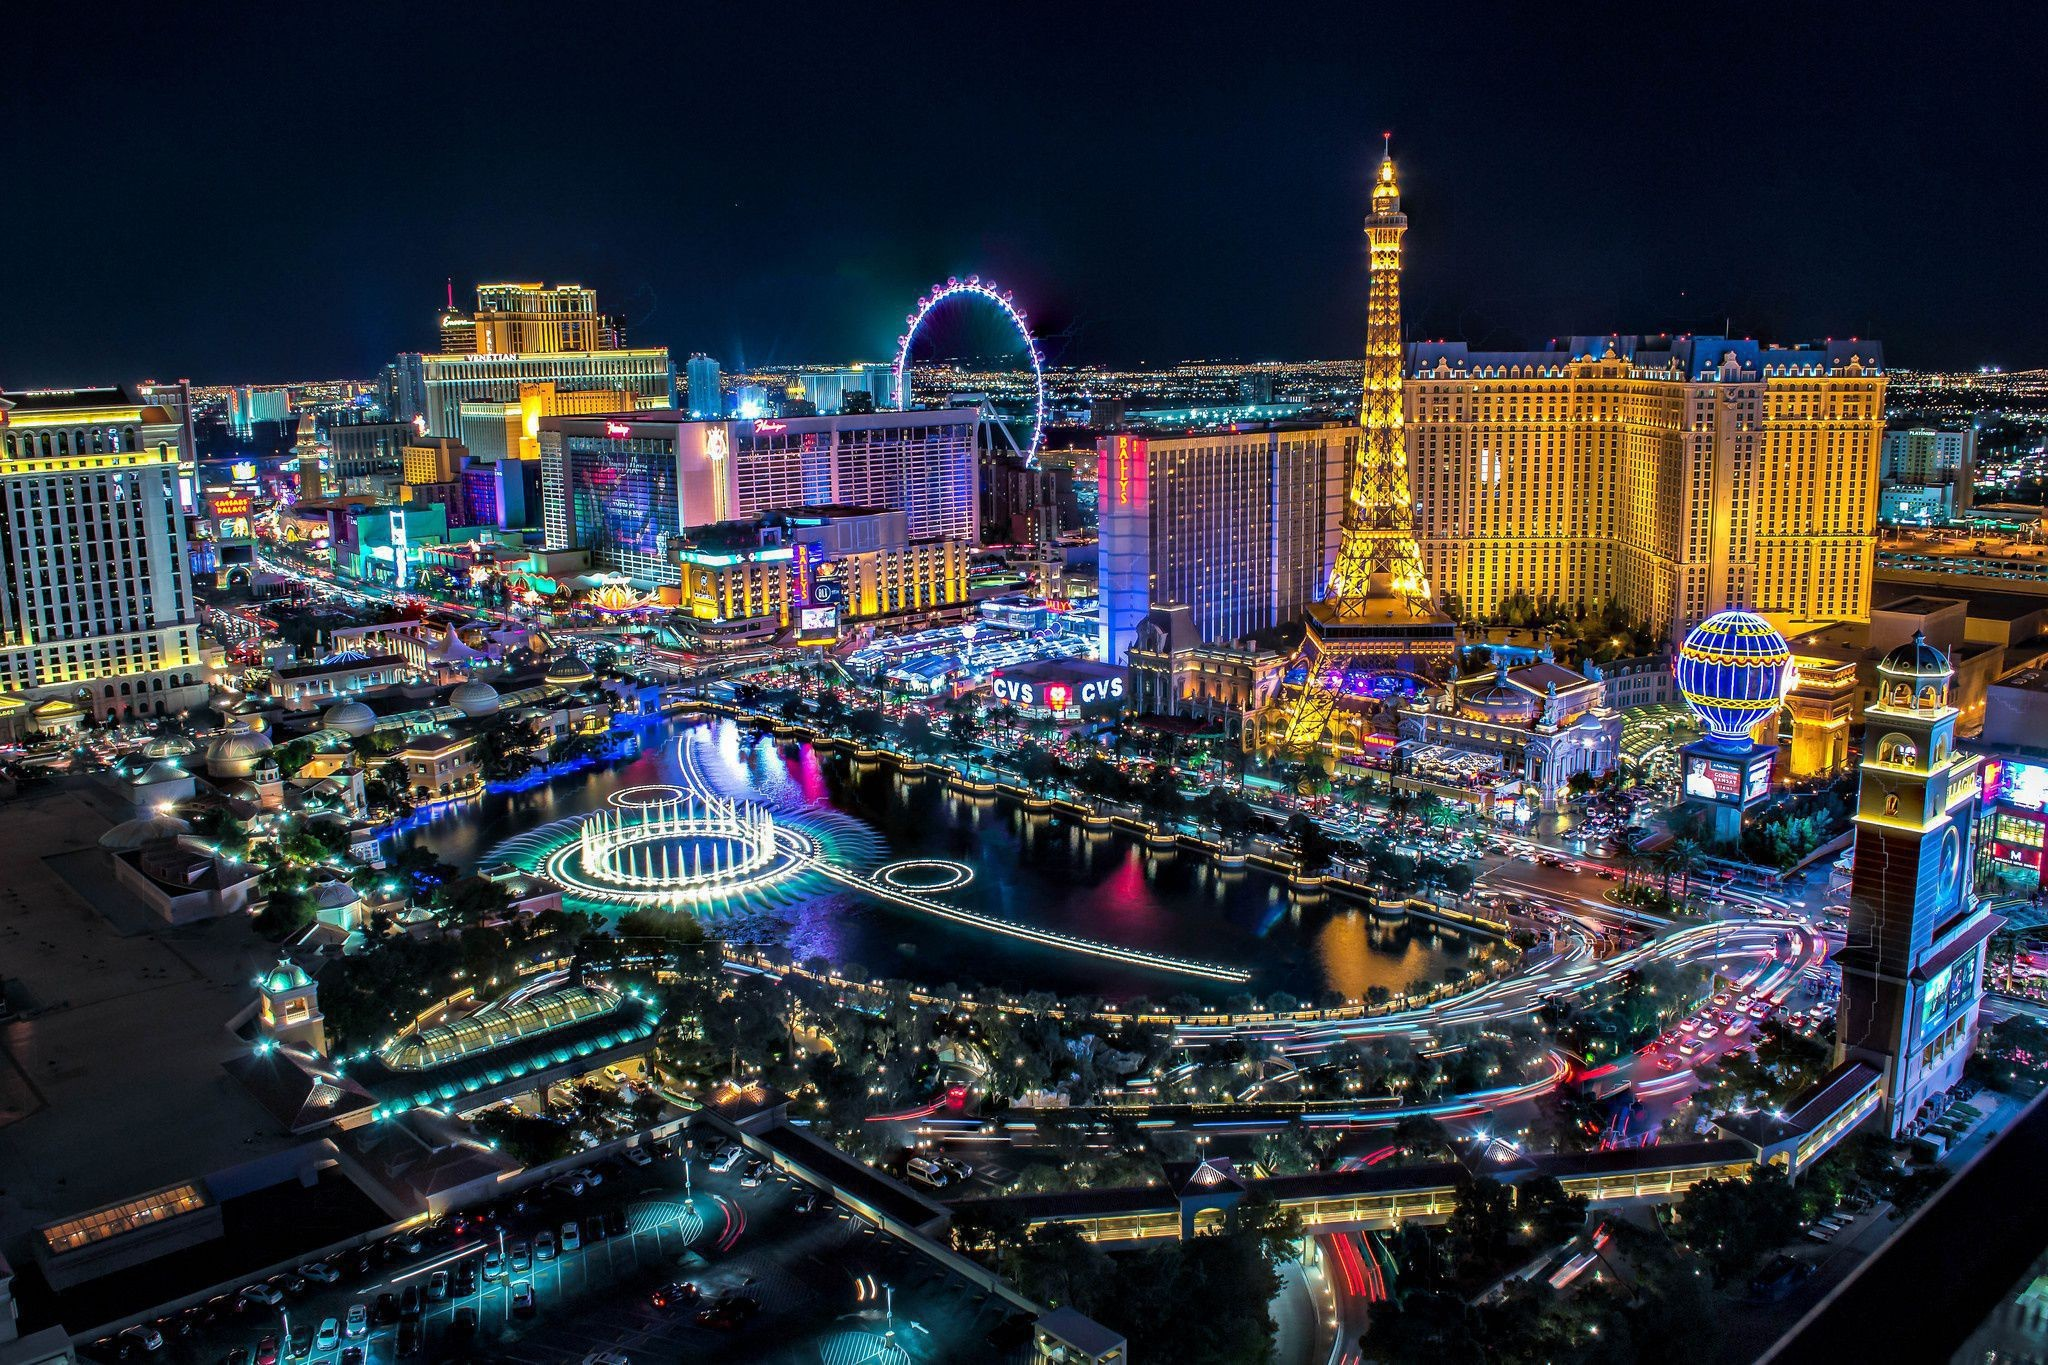 2048x1365 Las Vegas 4K Las Vegas Background Las Vegas Computer Backgrounds ...